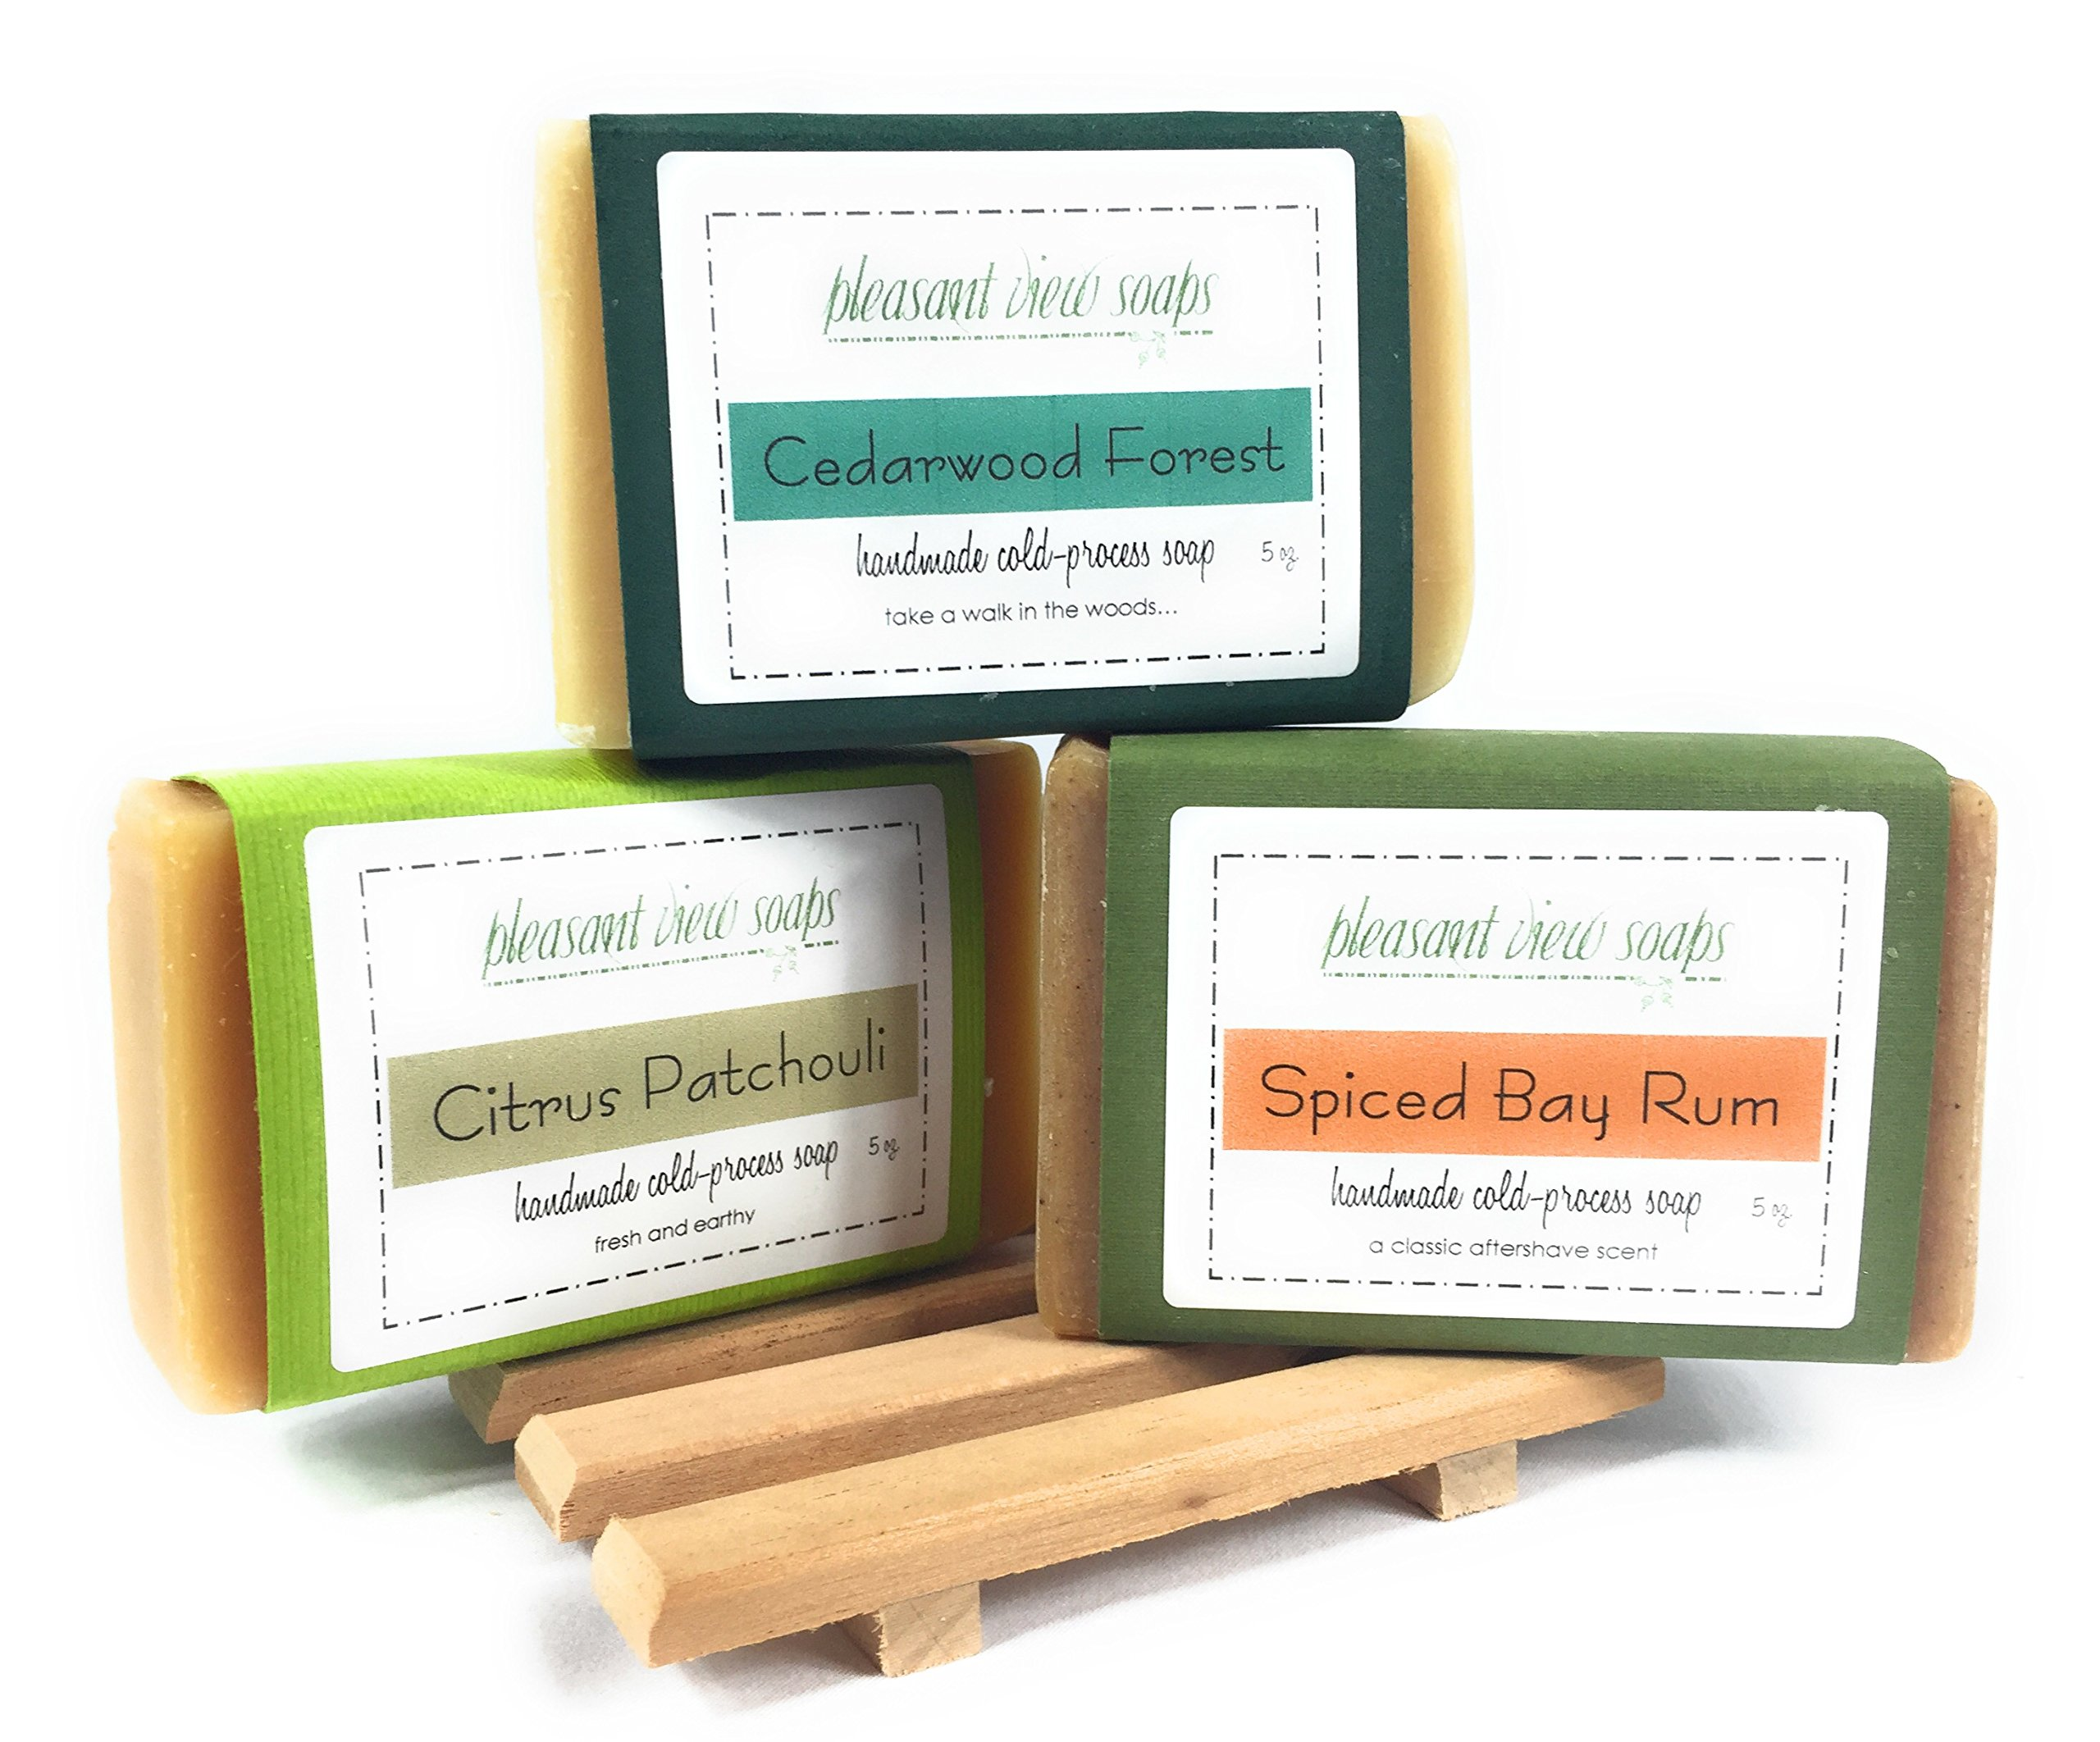 Natural Handmade Soap Gift Set - 3 Large 5 Ounce Bars with Aromatic Cedar Dish - Essential Oil Scents: Spiced Bay Rum, Citrus Patchouli, Cedarwood Forest - Elegant Organza Gift Bag